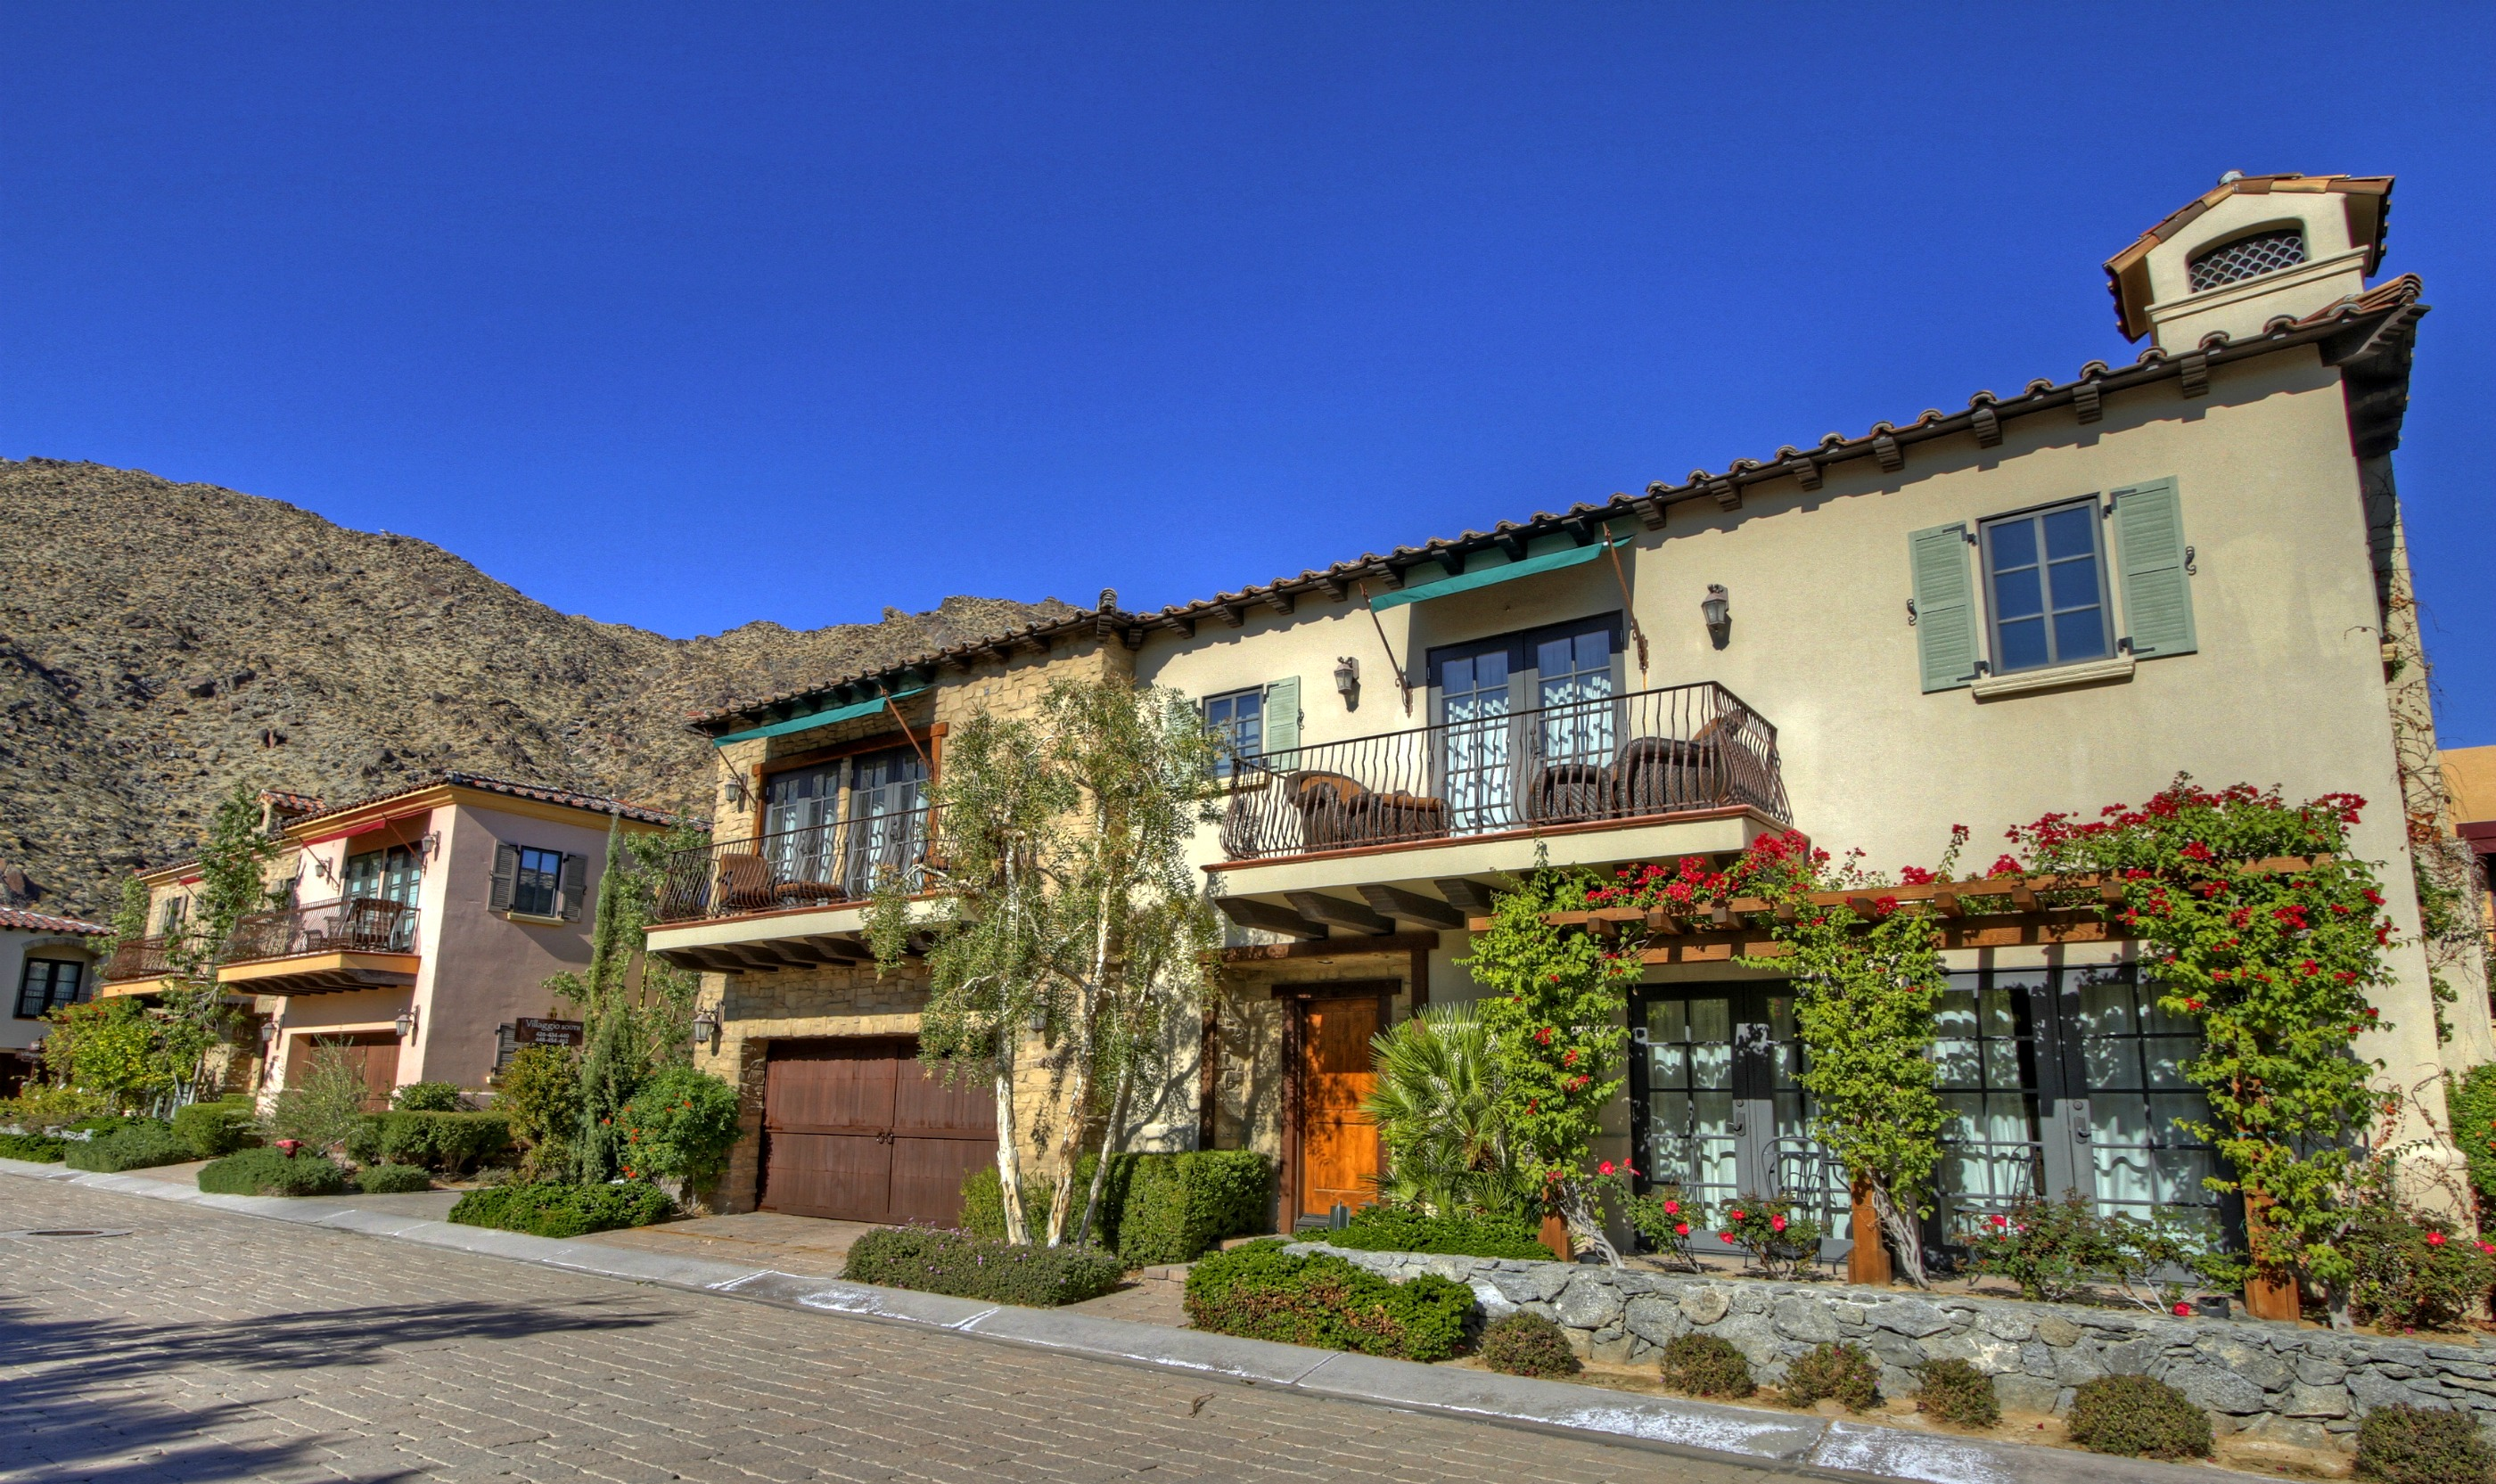 Spanish Walk Homes For Sale Palm Desert